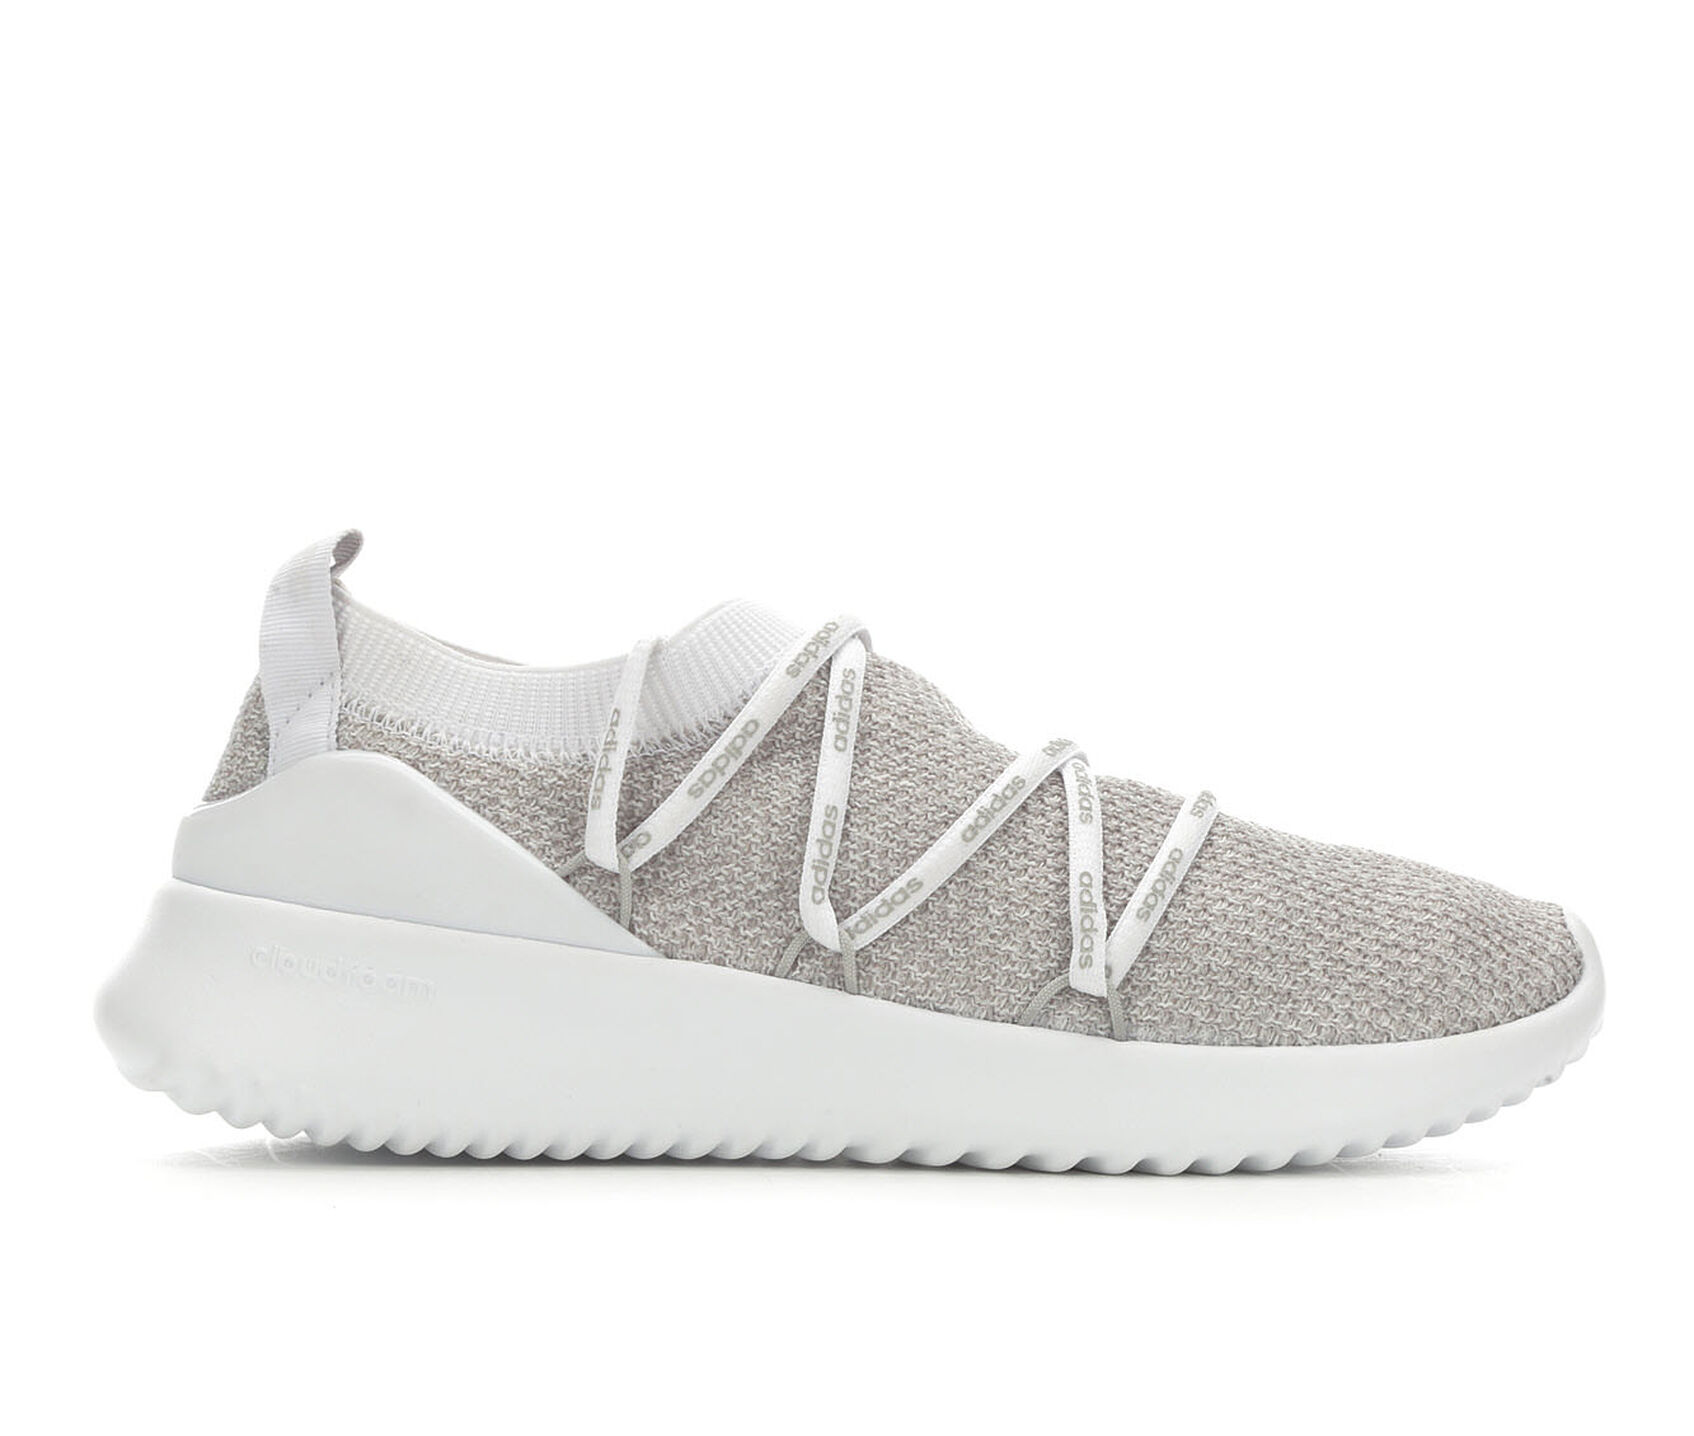 4a5940473a4 ... Adidas Ultimamotion Slip-On Sneakers. Previous